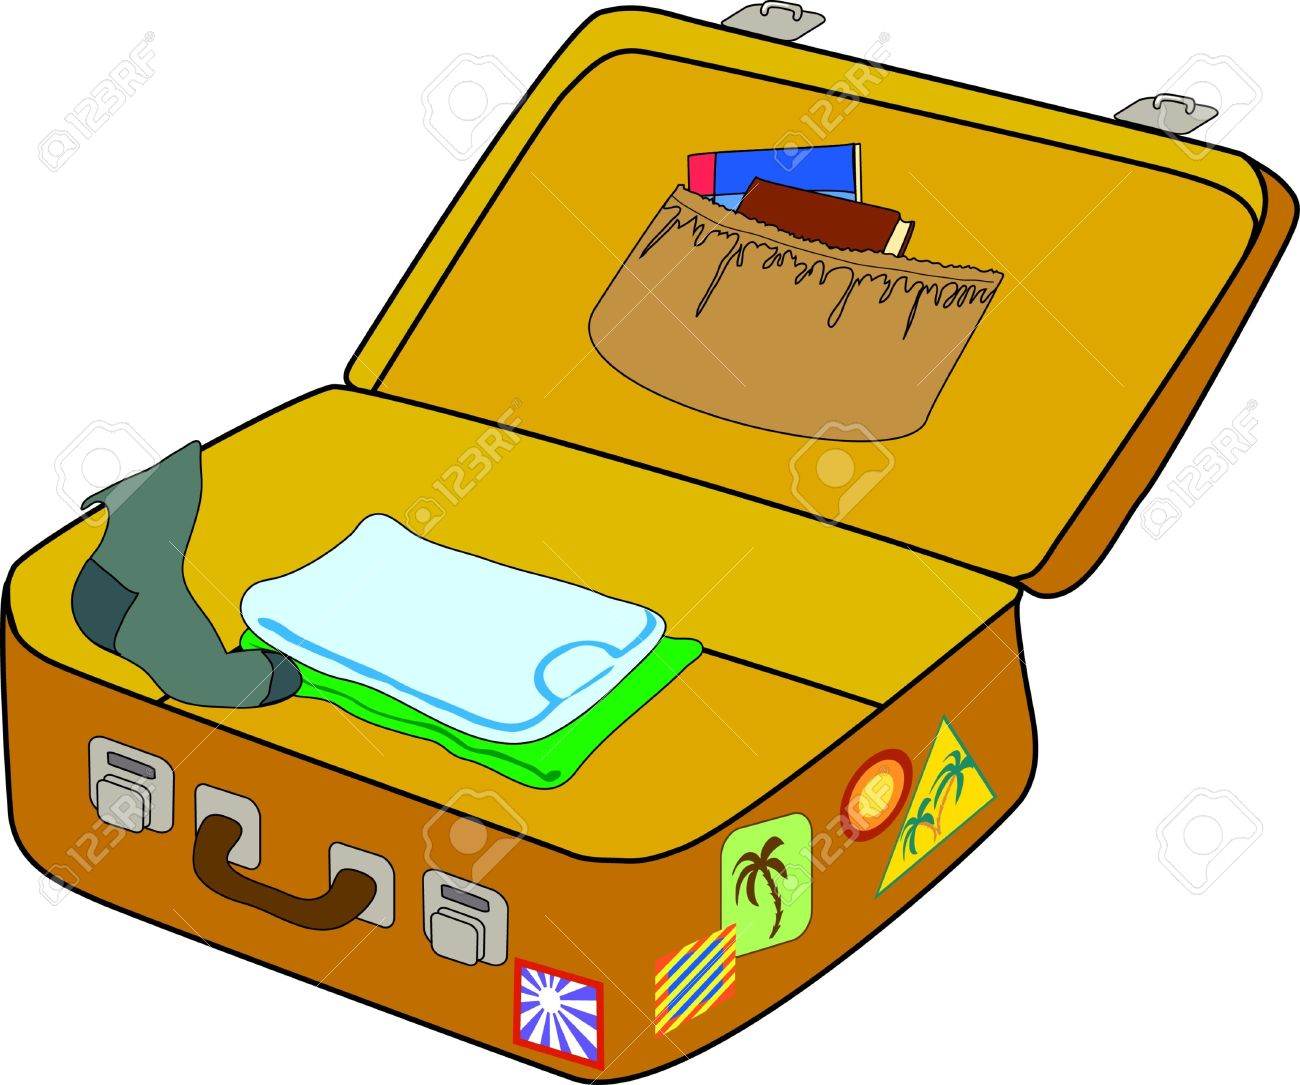 Packed clipart - Clipground Packing Luggage Clipart